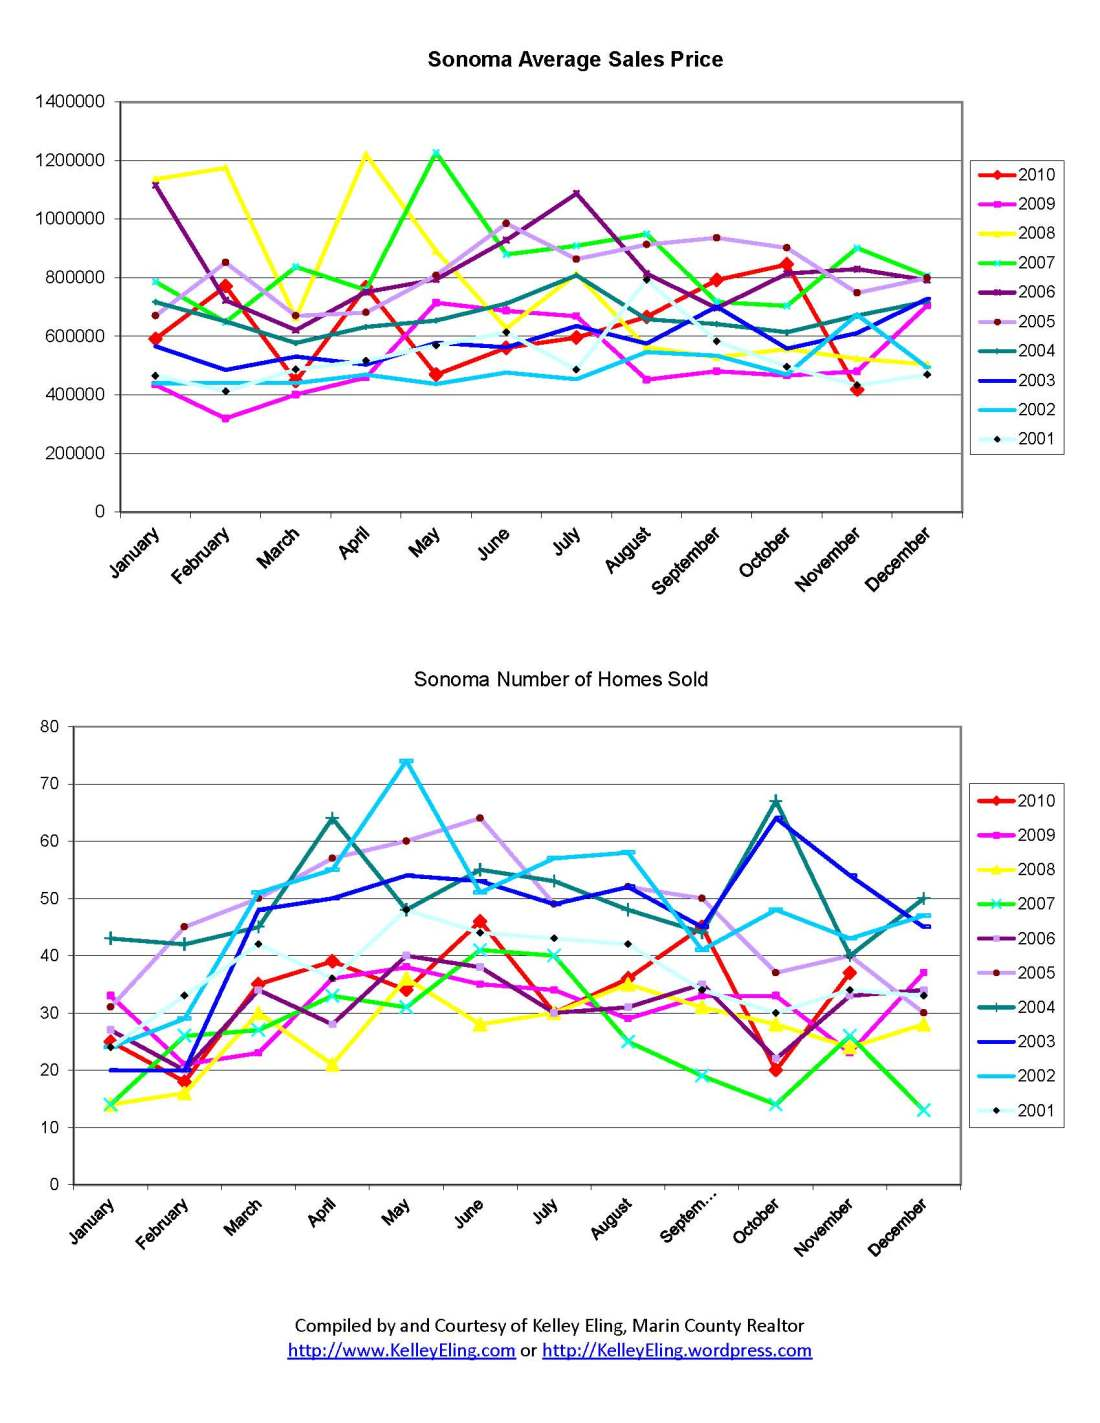 Sonoma Home Sales Charts from 2001 through November 2010, by Kelley Eling, Marin County Realtor